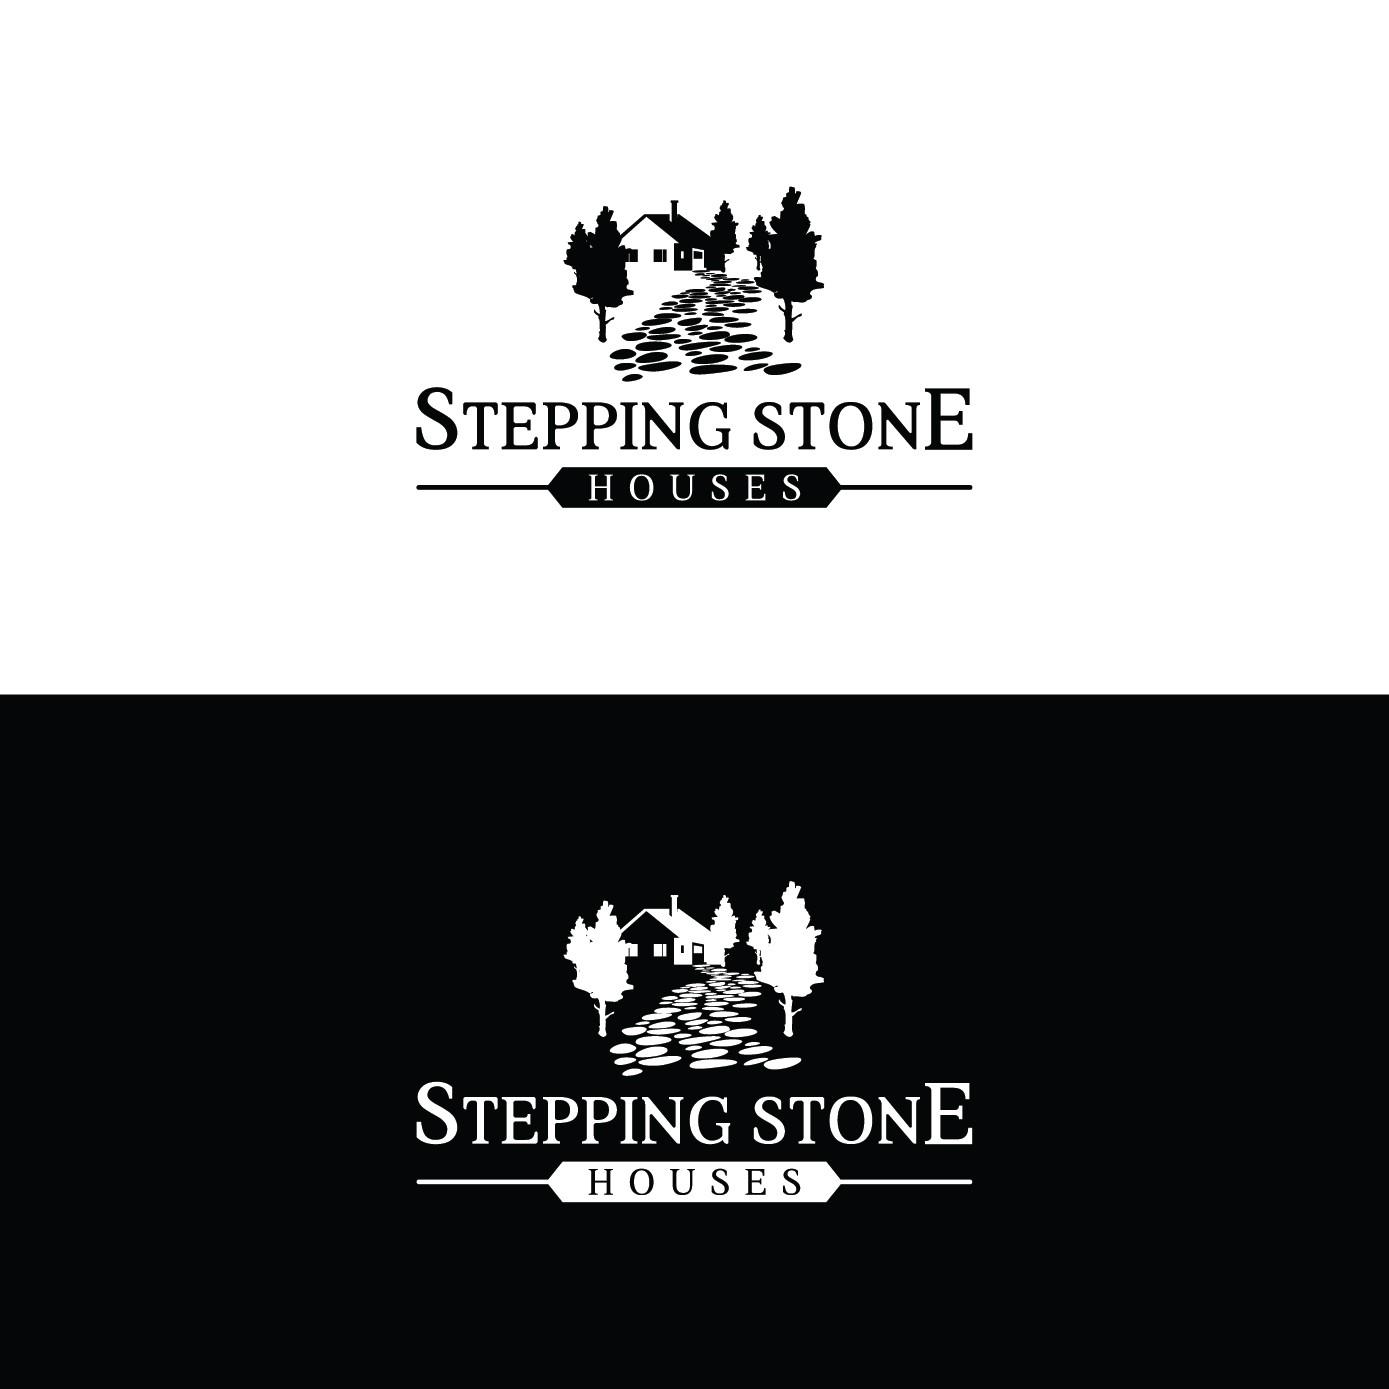 Stepping Stone Houses